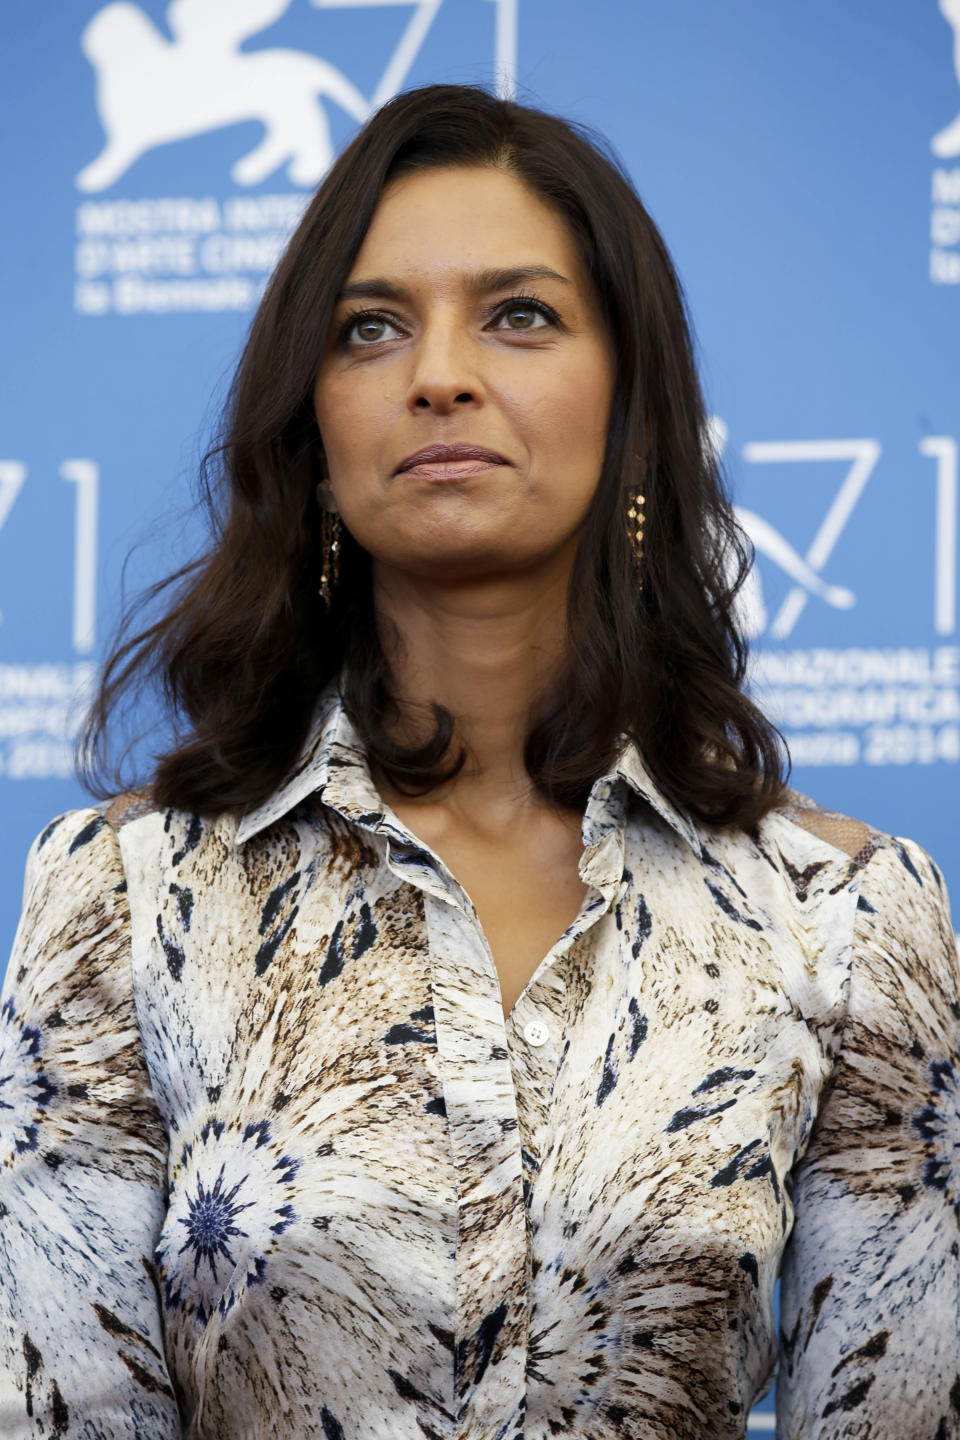 """FILE - Jhumpa Lahiri poses during a photo call at the 71st edition of the Venice Film Festival in Venice, Italy, on Aug. 27, 2014. Princeton University Press announced Monday that Lahiri's """"Translating Myself and Others"""" will come out in May. (AP Photo/Andrew Medichini, File)"""